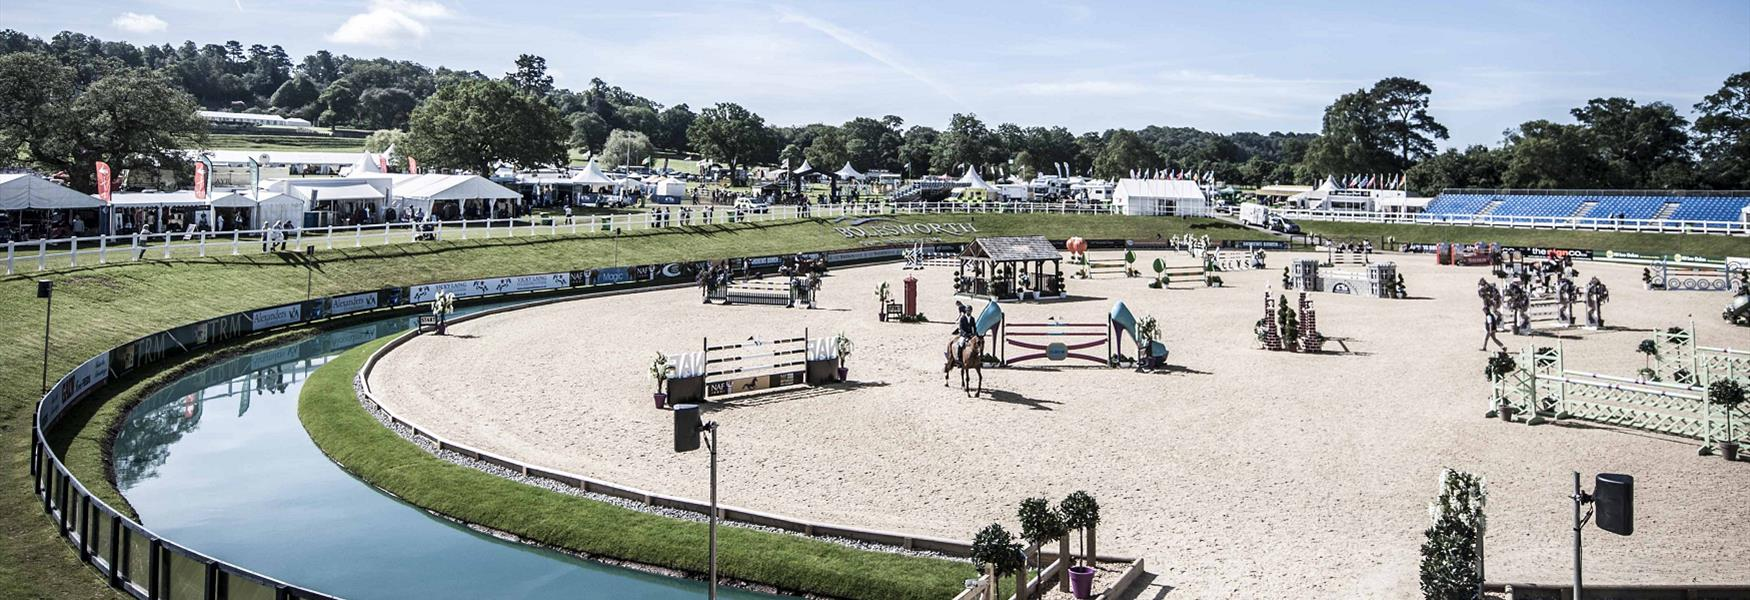 The Equerry Bolesworth International Horse Show